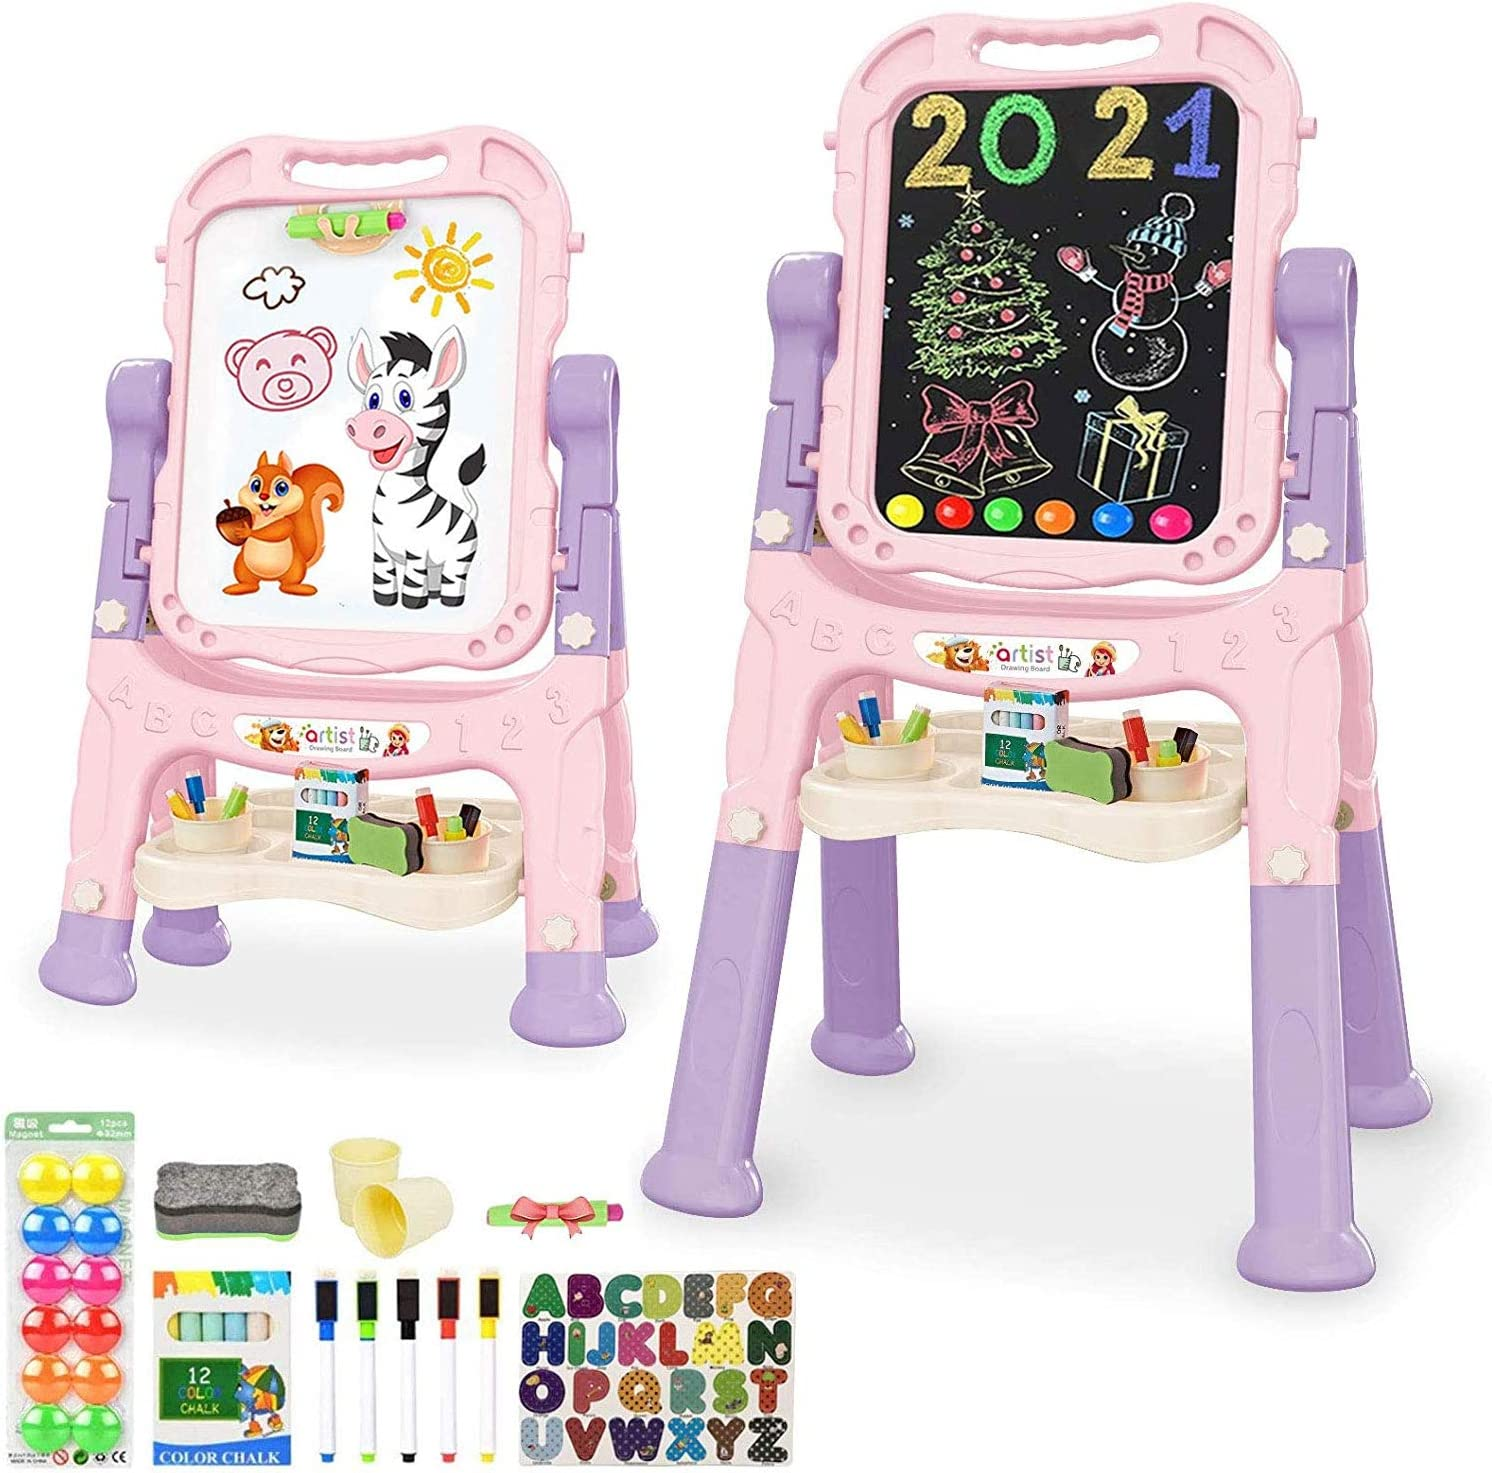 Mojitodon Easel for Over 3 Years Old Kids,Rotatable Double Sided